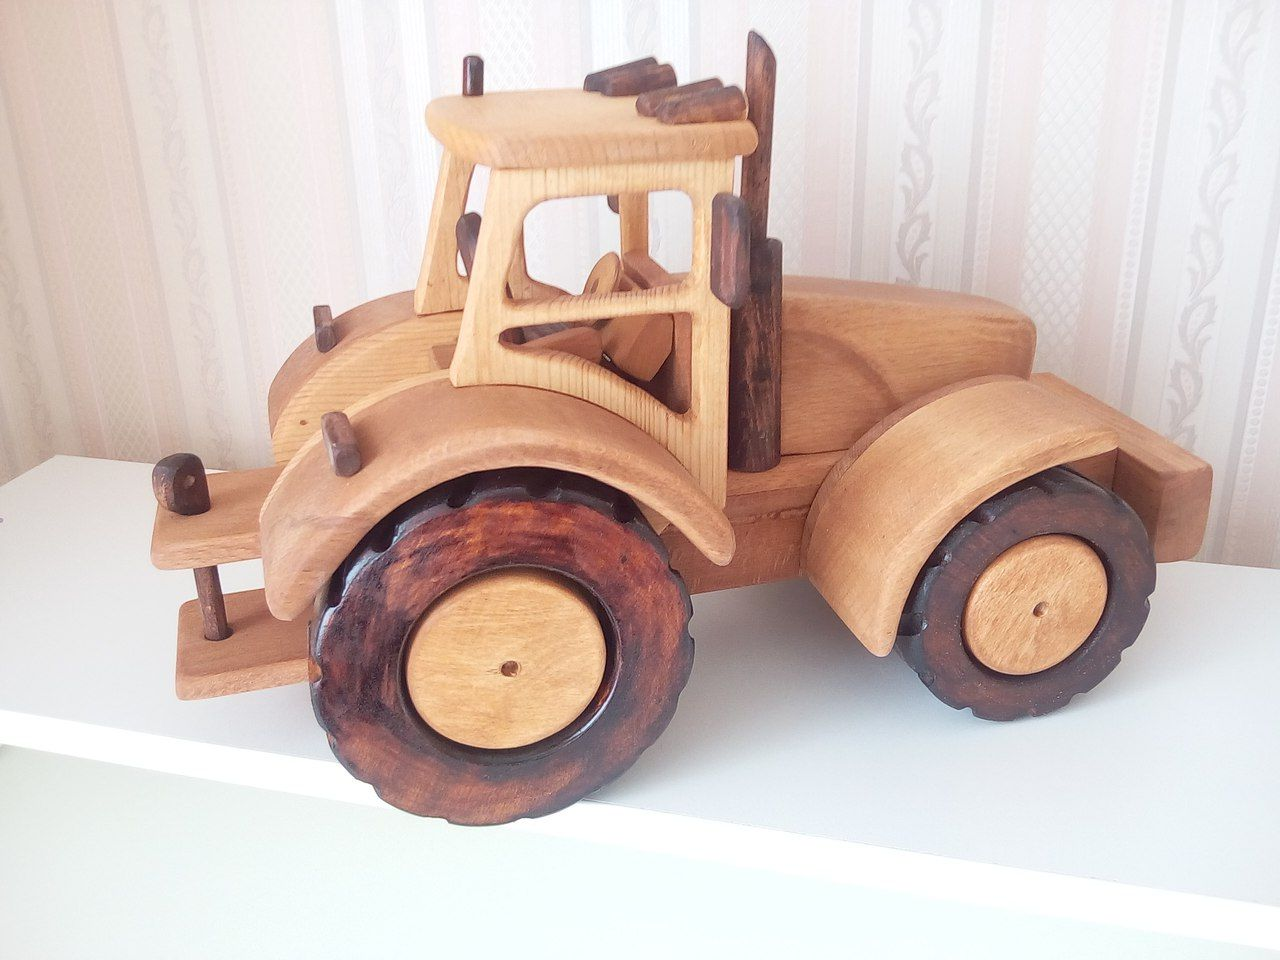 pinpaul burke on projects | wooden toys, wood toys plans